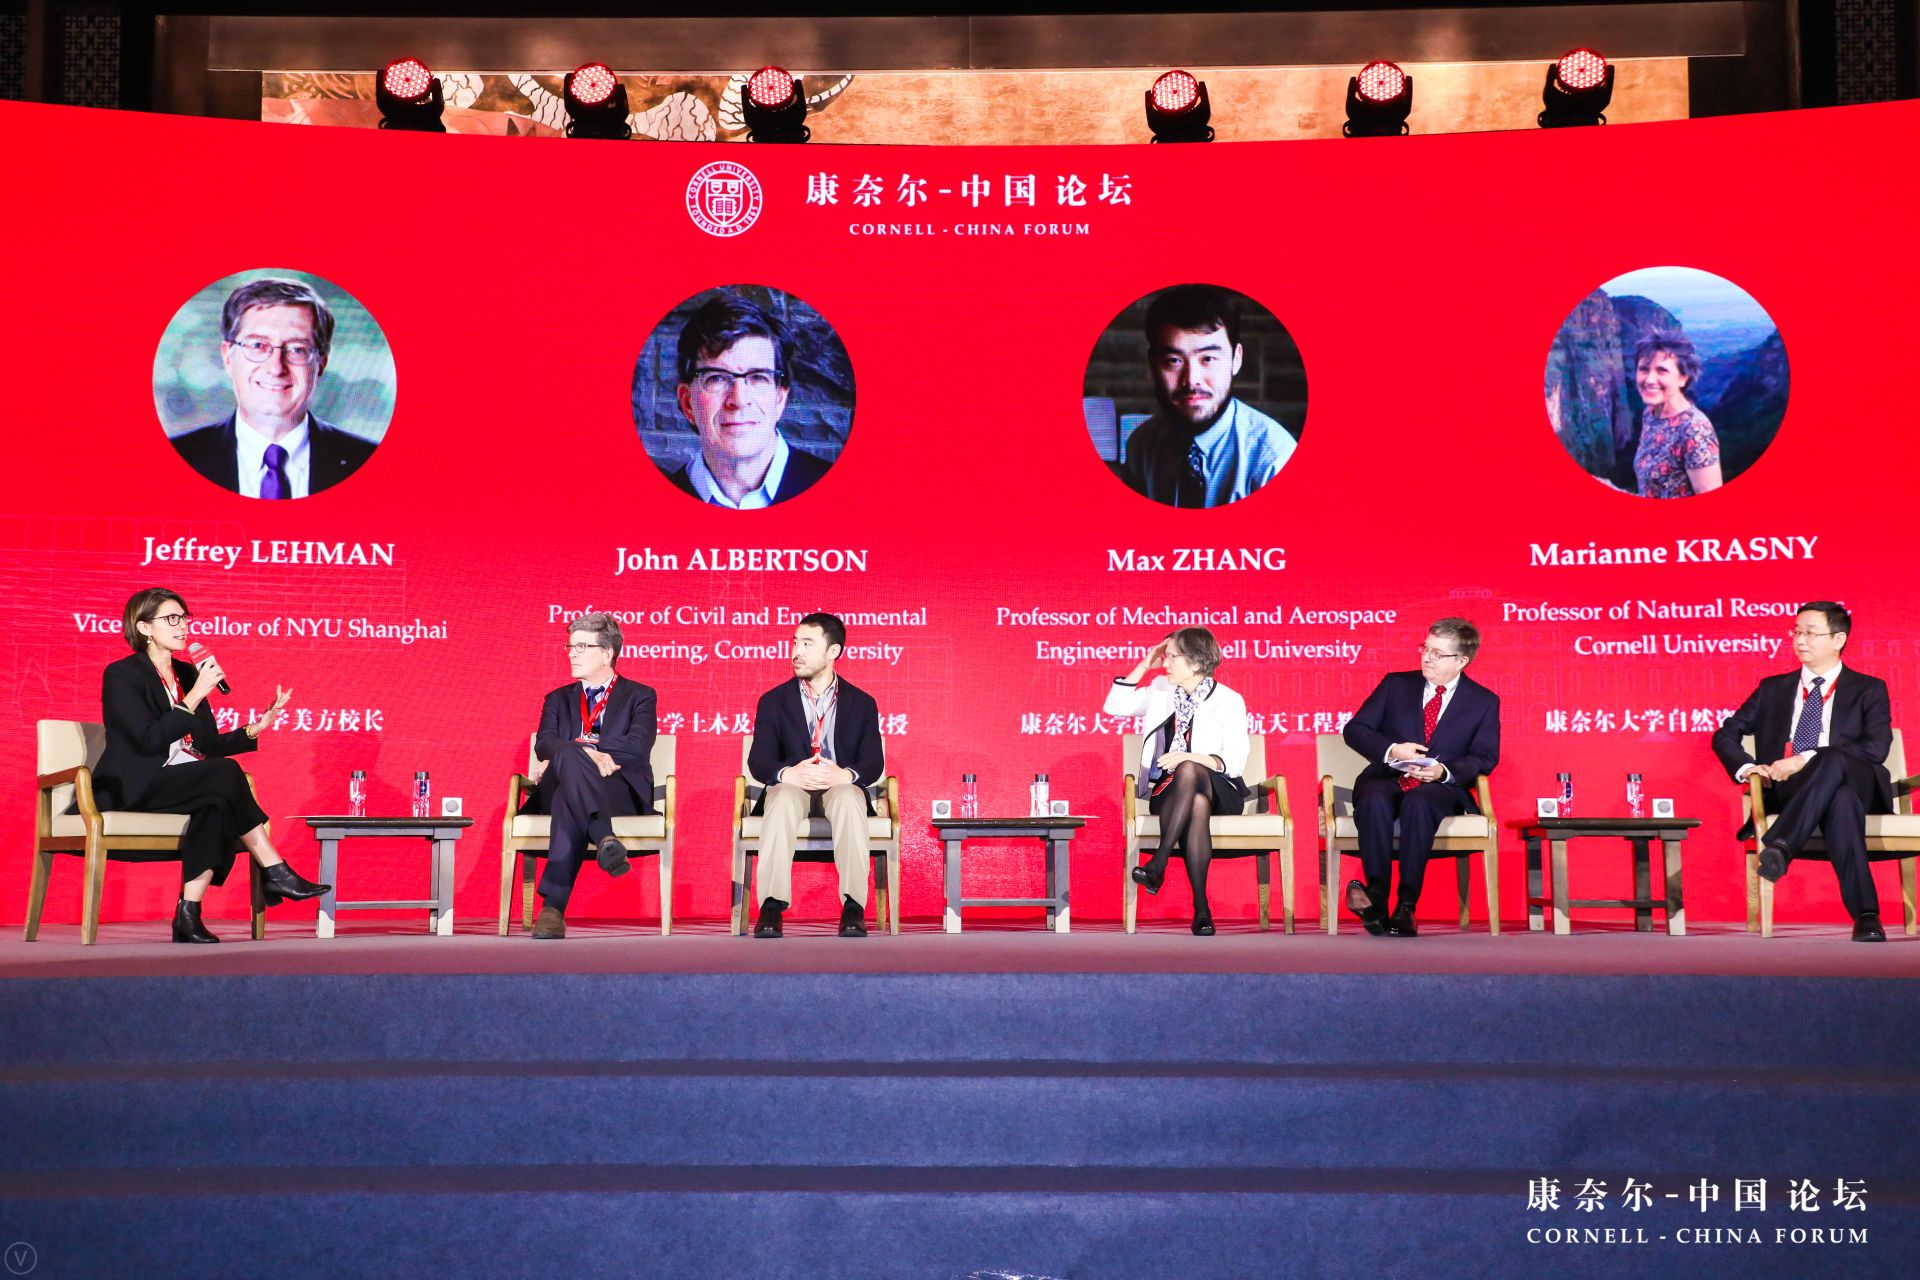 Cornell-China Forum Panel on Energy and Environment